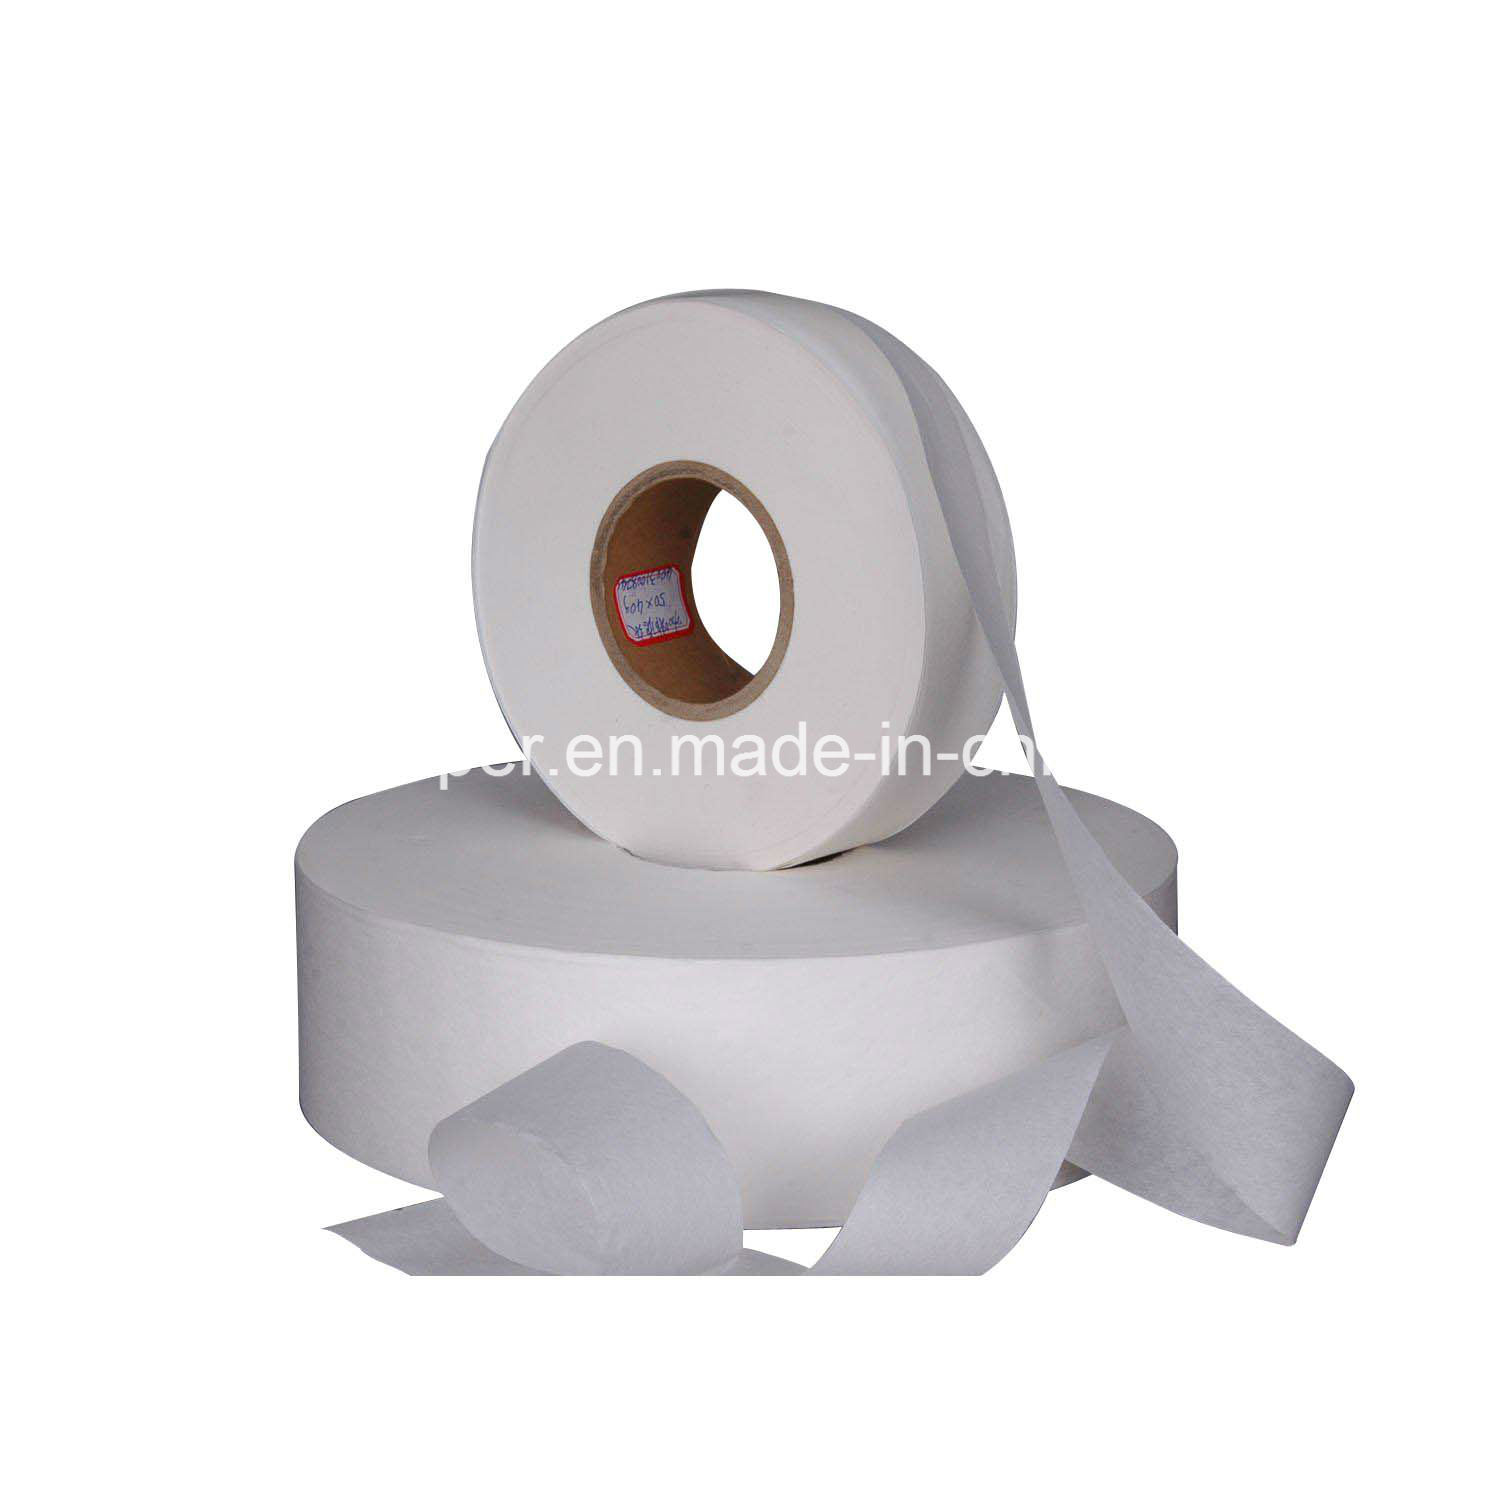 Wholesale Glatfelter Heat Seal Tea Bag Filter Paper in Roll